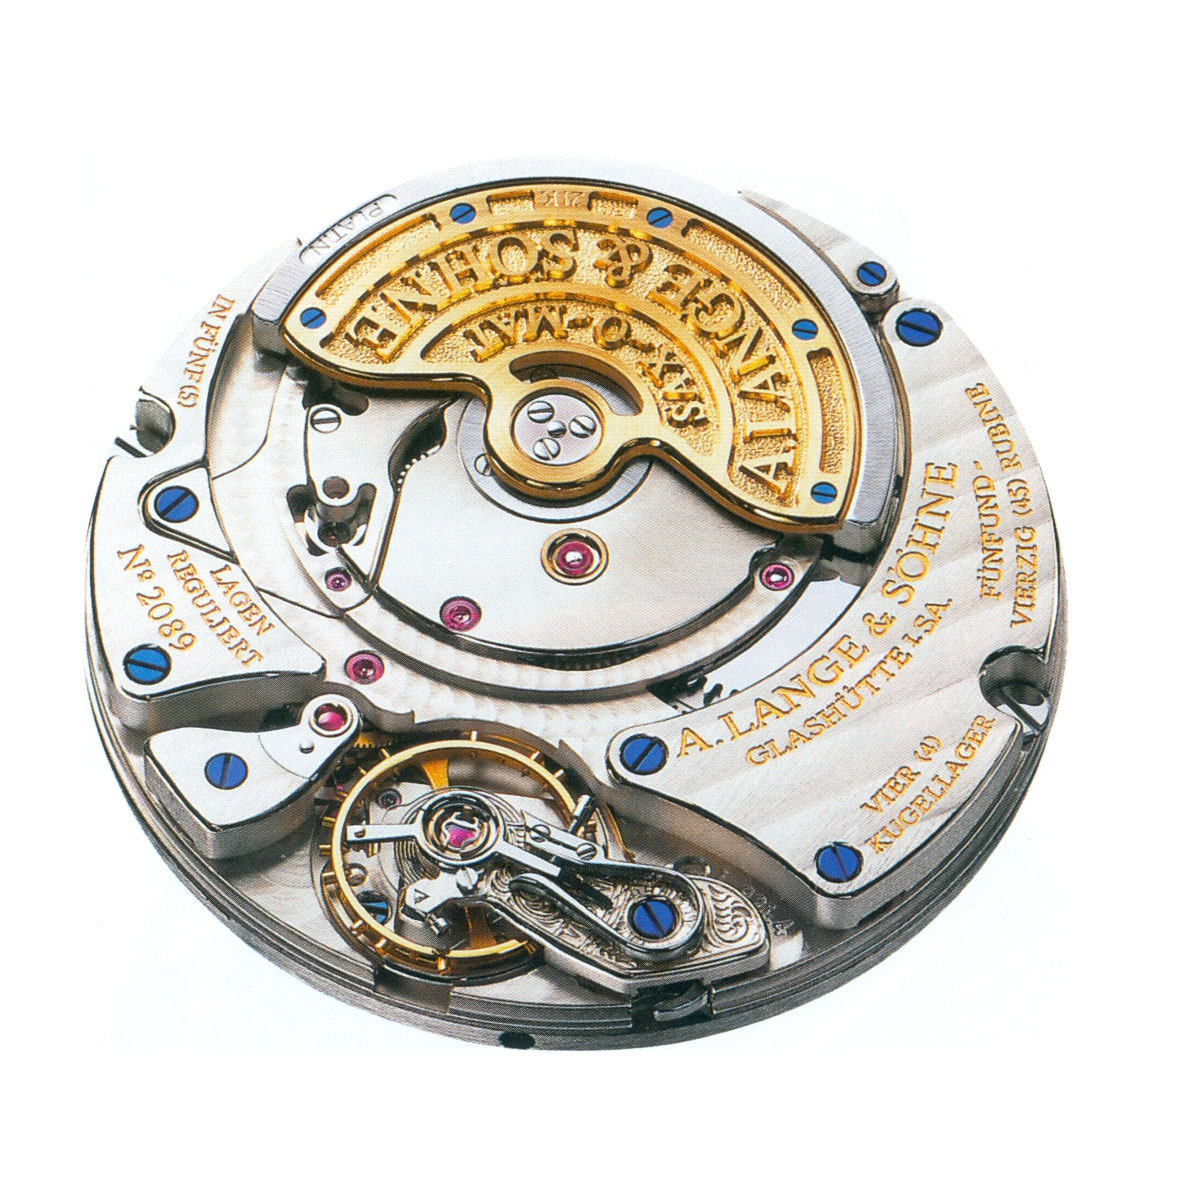 The Lange Calibre L921.4, a variant of the Lanagematik Sax-0-Mat with the big date function